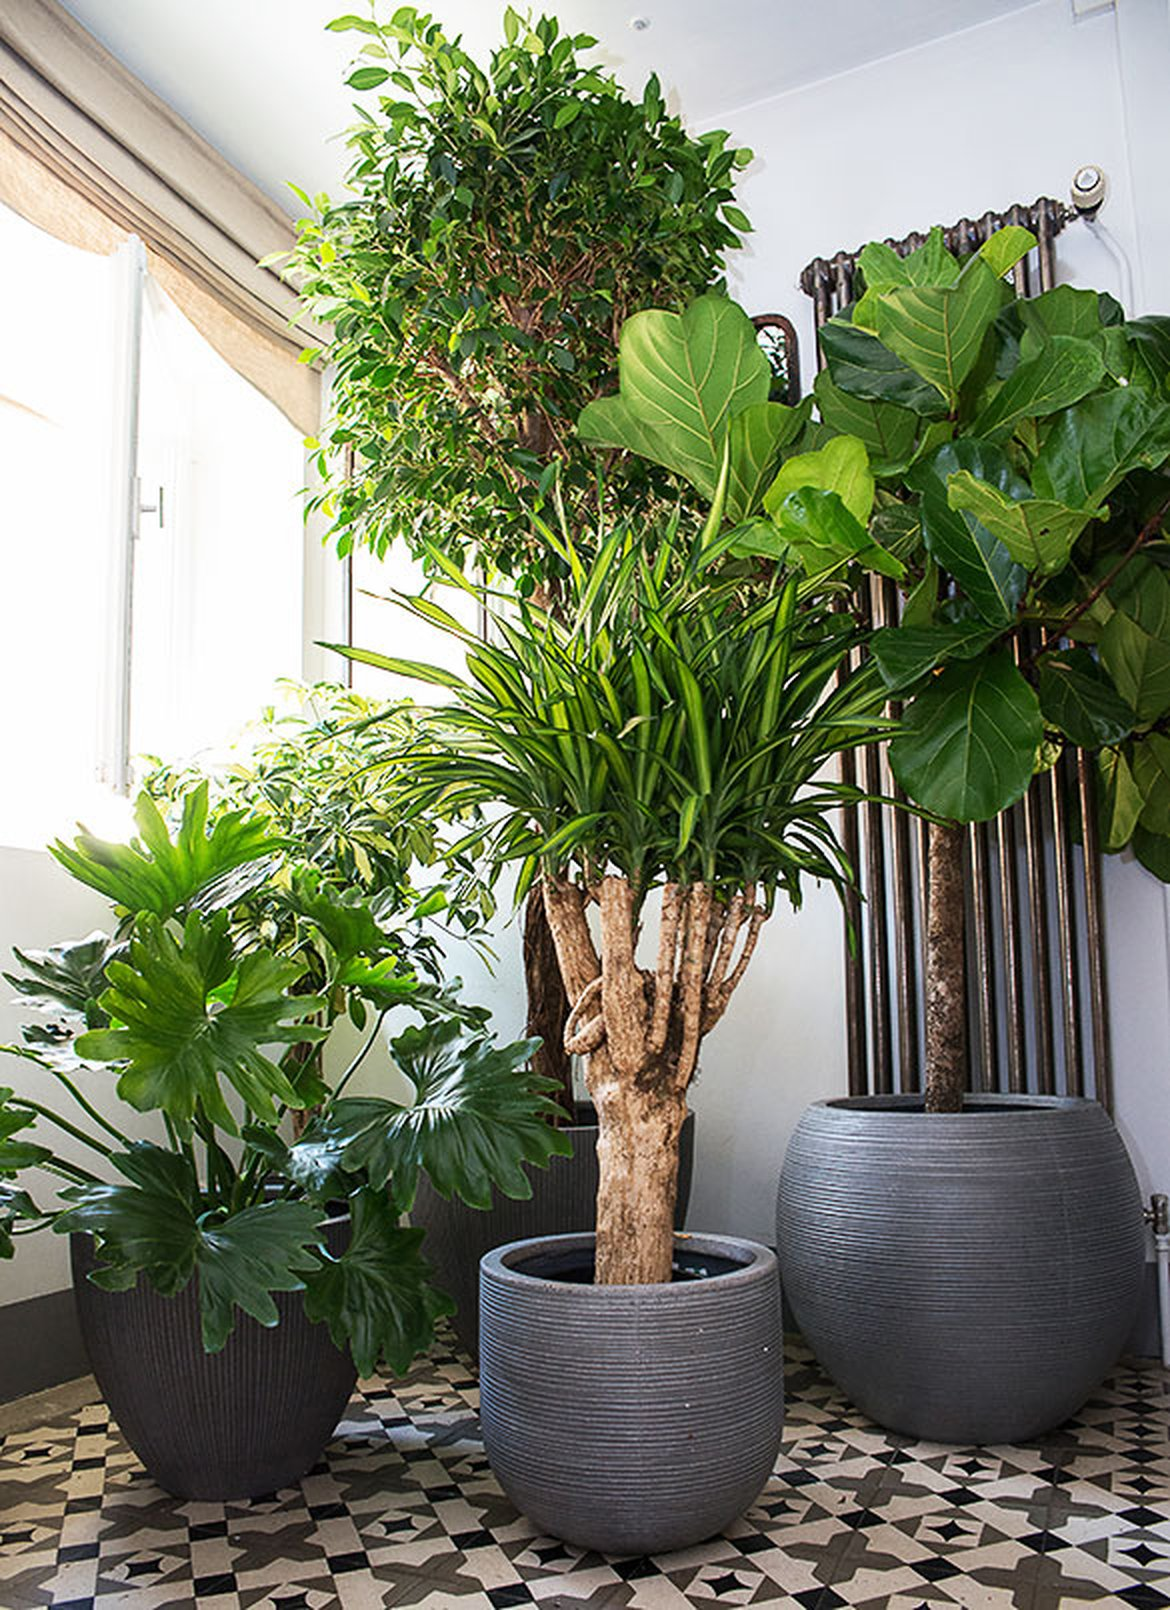 Plantes d interieur decoration fashion designs for Plante interieur